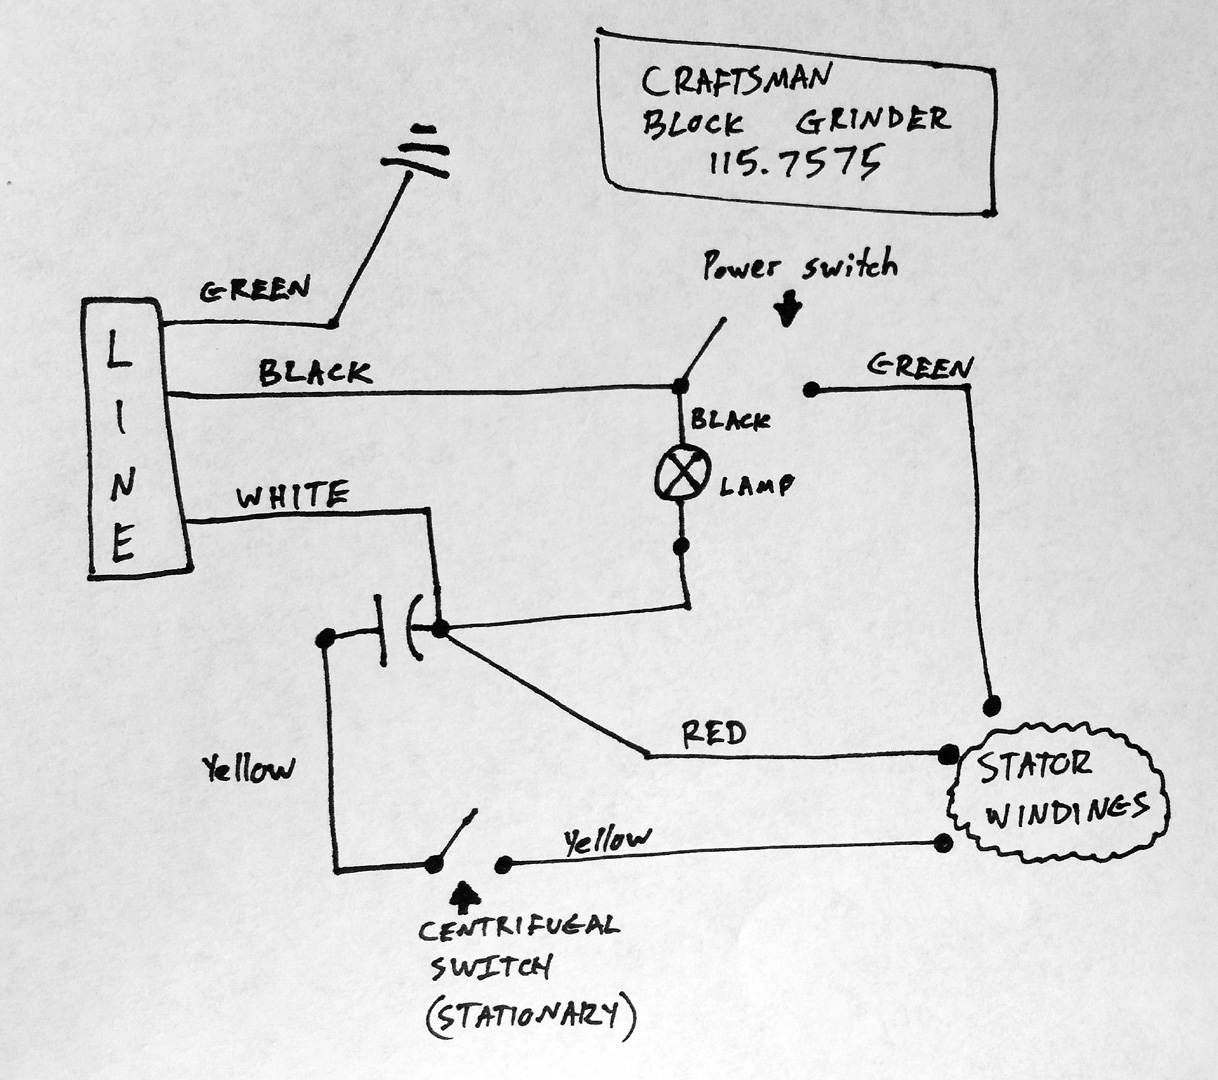 grinder_cm_1157575_01_elec2 craftsman 115 7575 pre block grinder restoration [part 4 Craftsman Bench Grinder Schematic at readyjetset.co